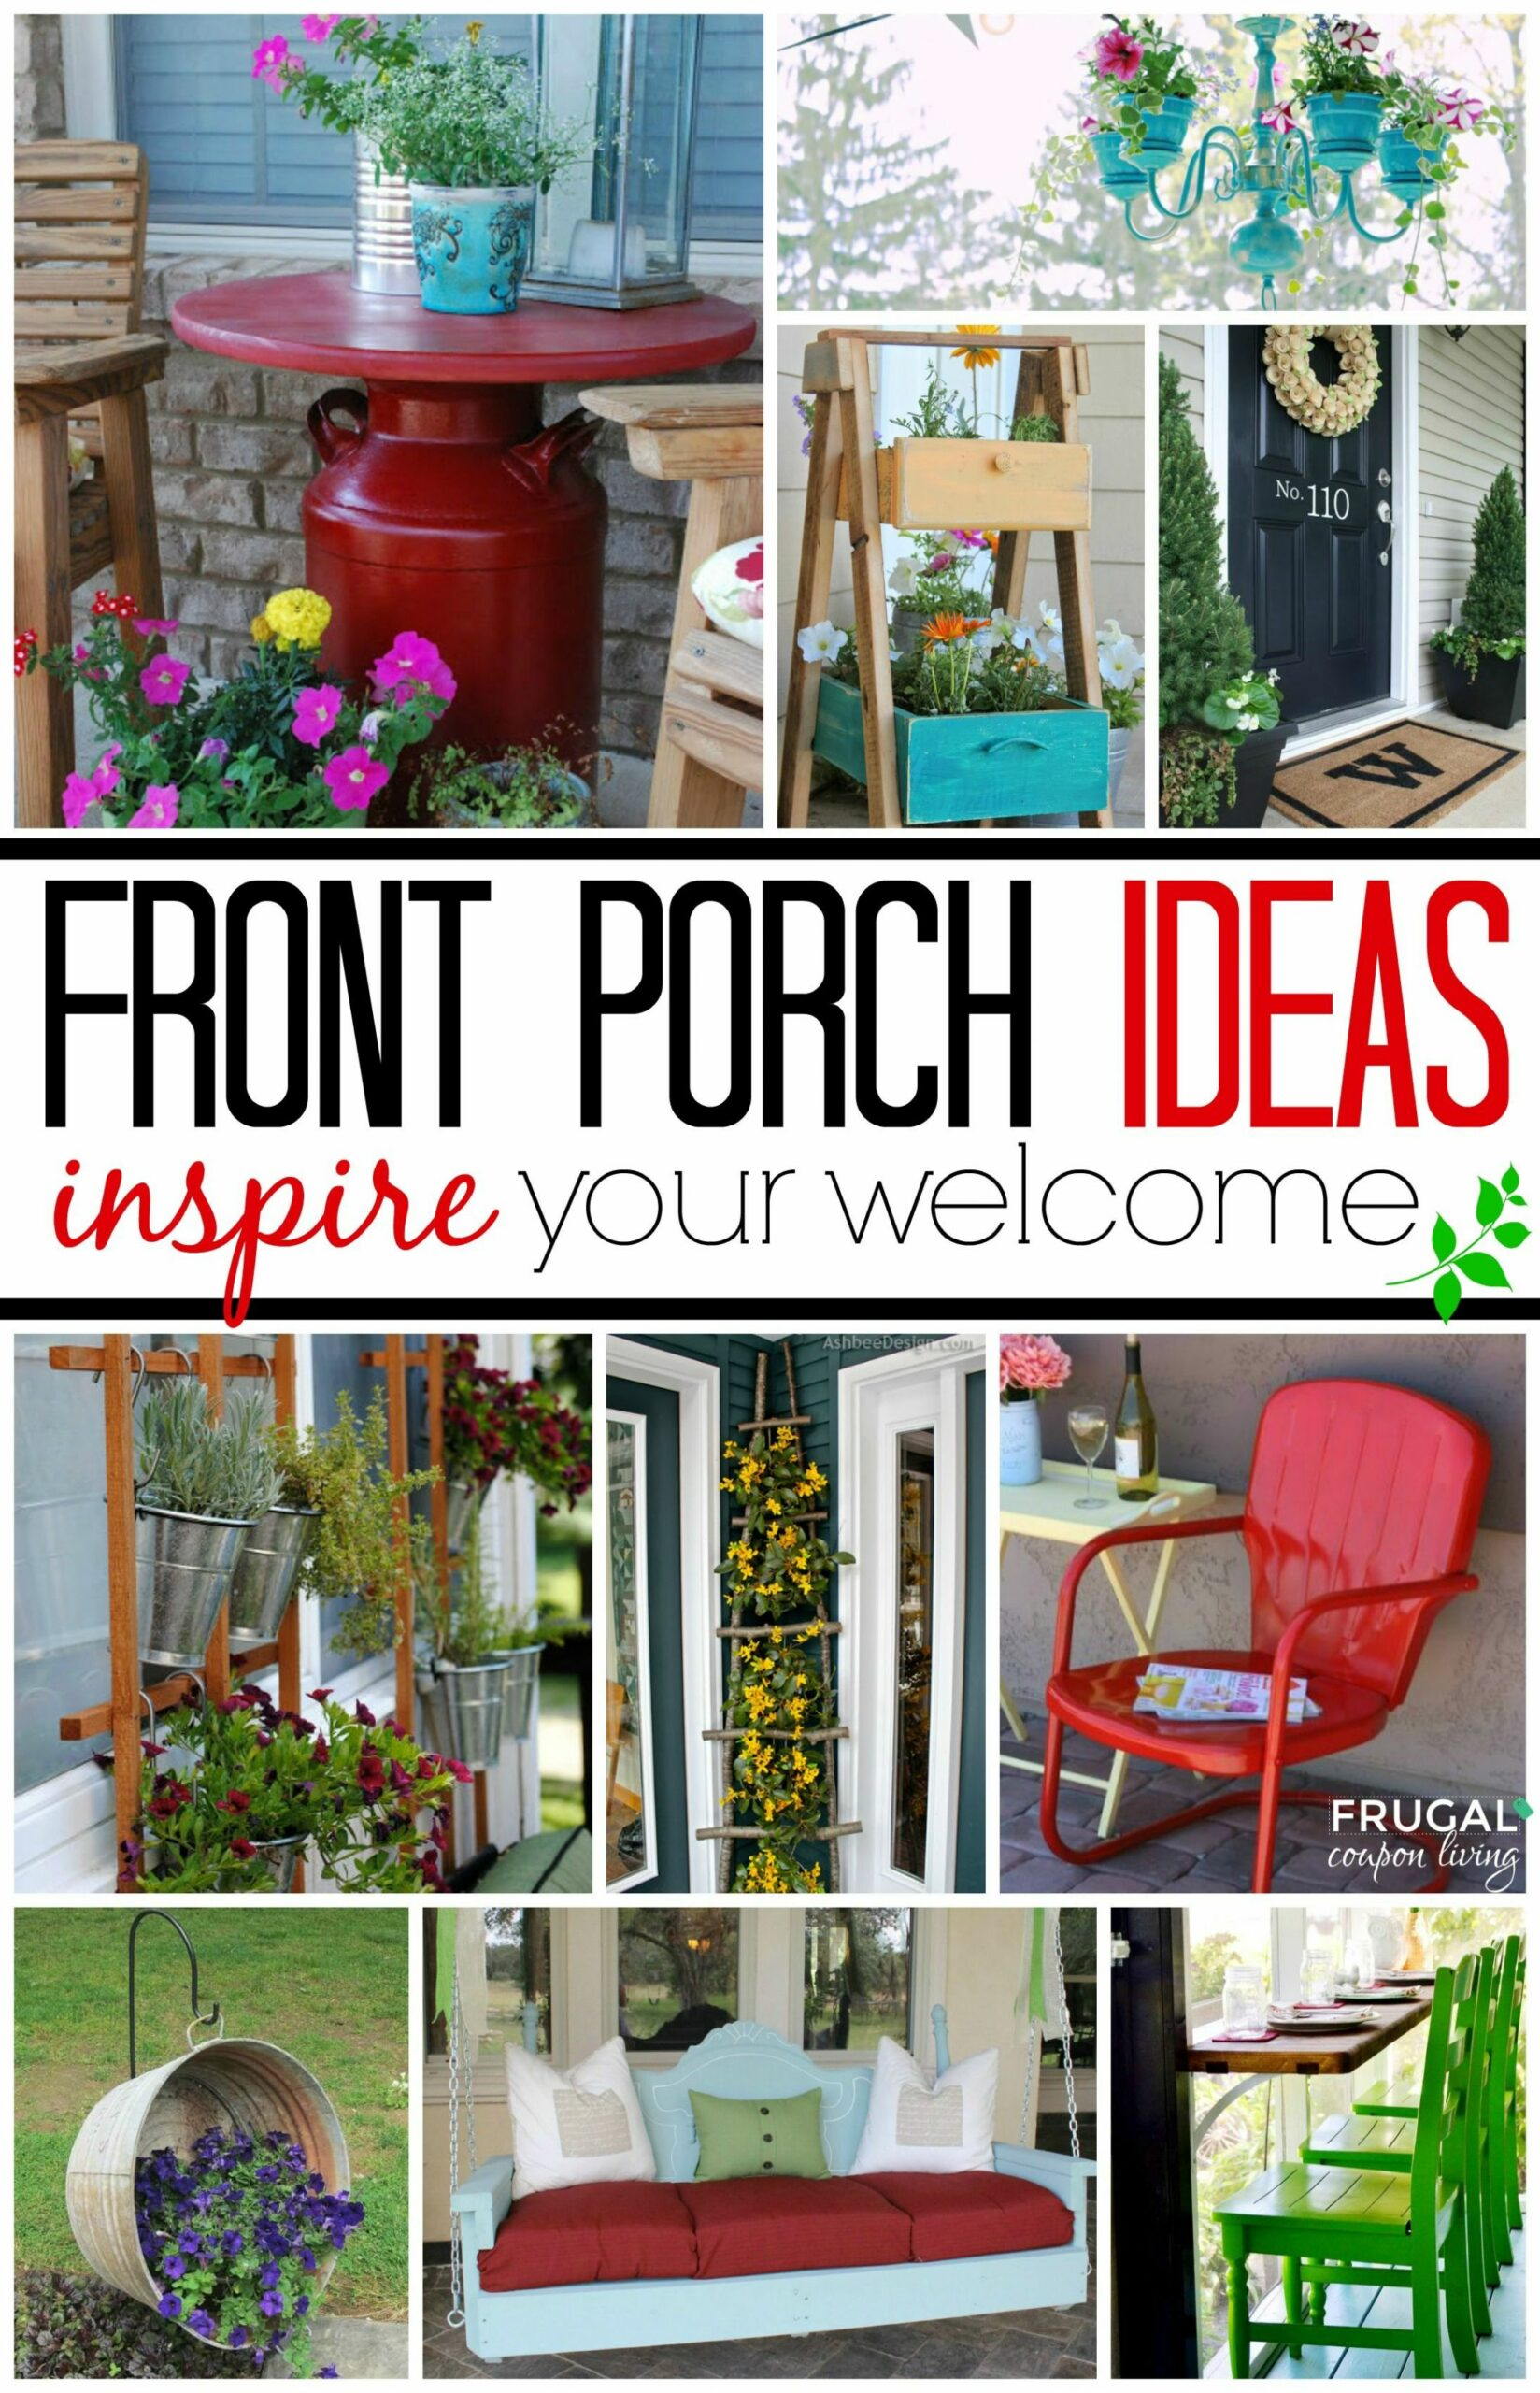 Front Porch Ideas | Home, garden, Front porch, Porch decorating - front porch ideas diy